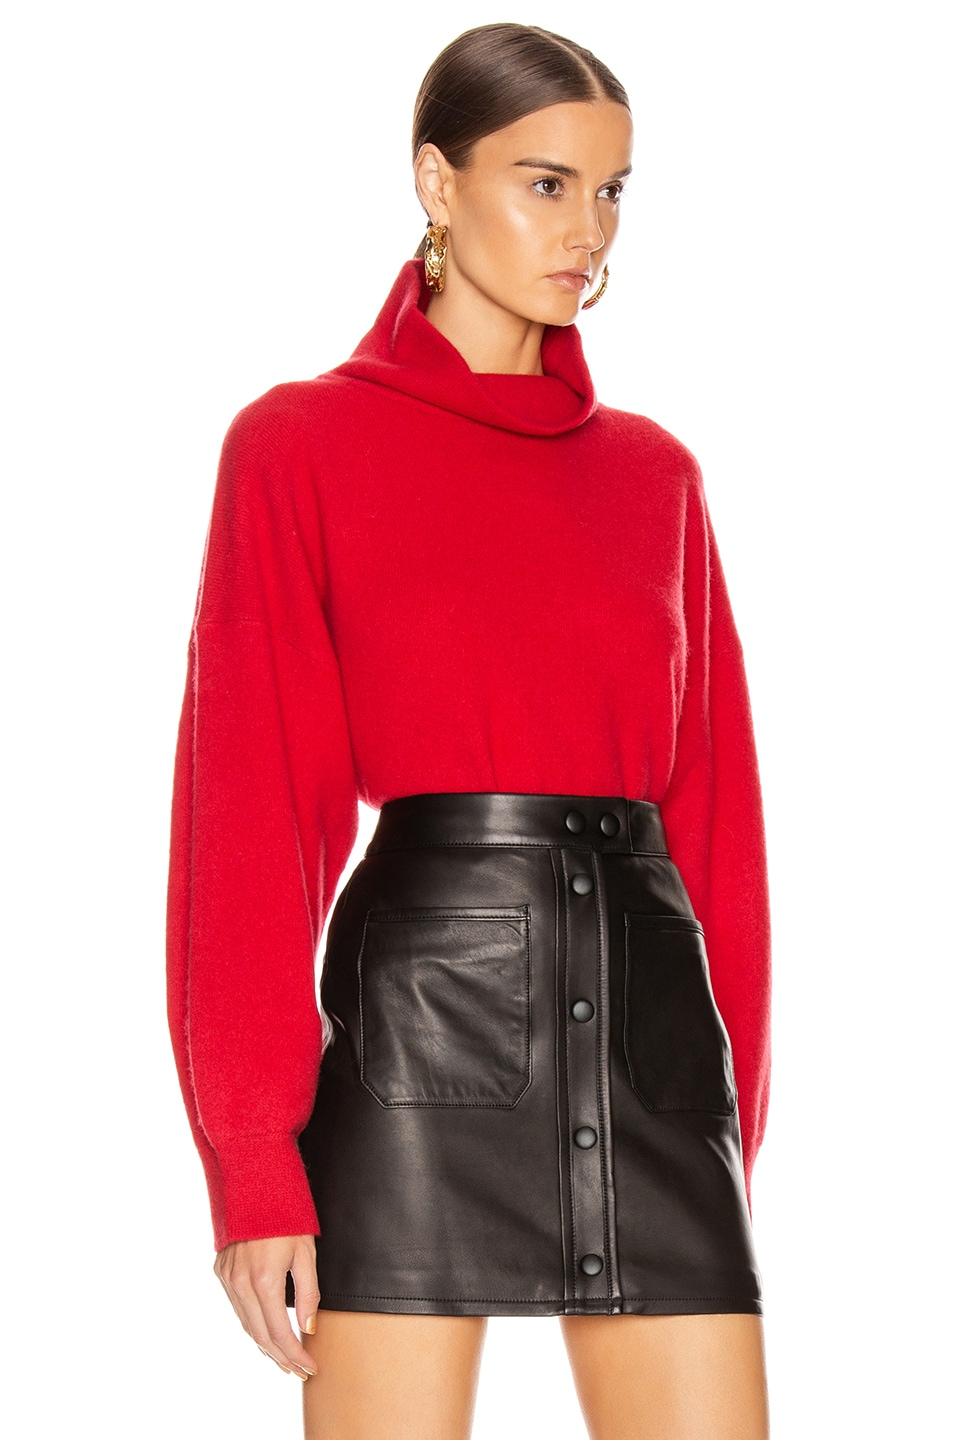 Image 2 of Equipment Aixenne Turtleneck Sweater in Rio Red